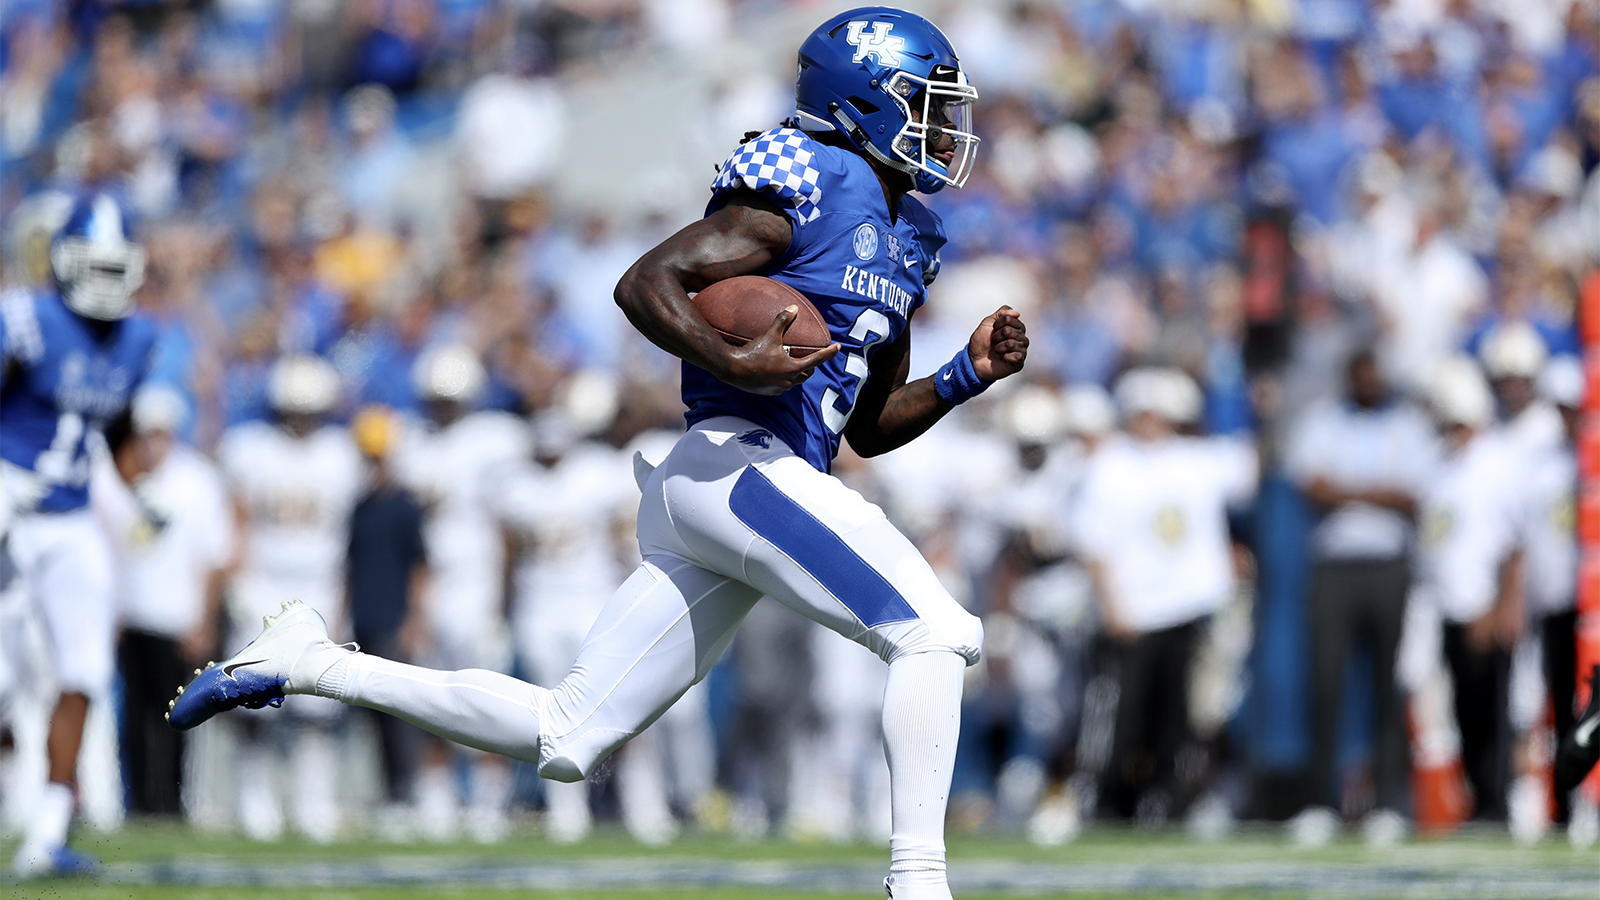 Image result for terry wilson kentucky